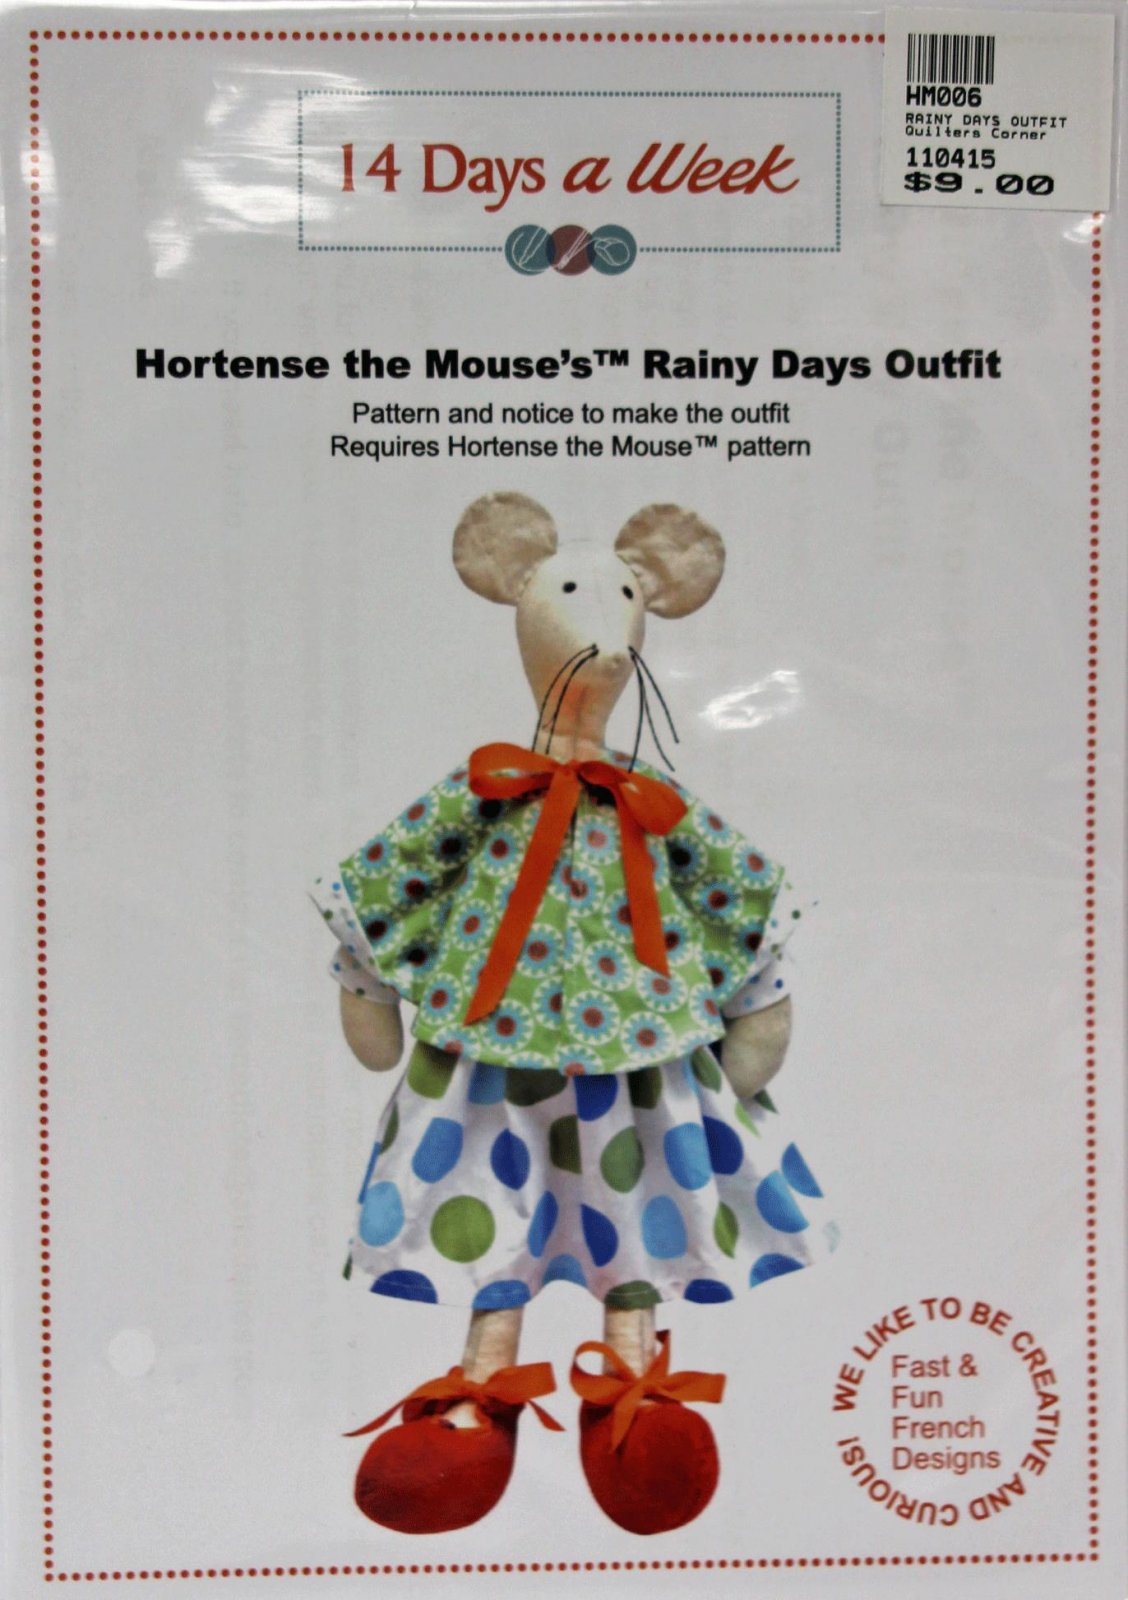 Hortense the Mouse's Rainy Days Outfit Pattern